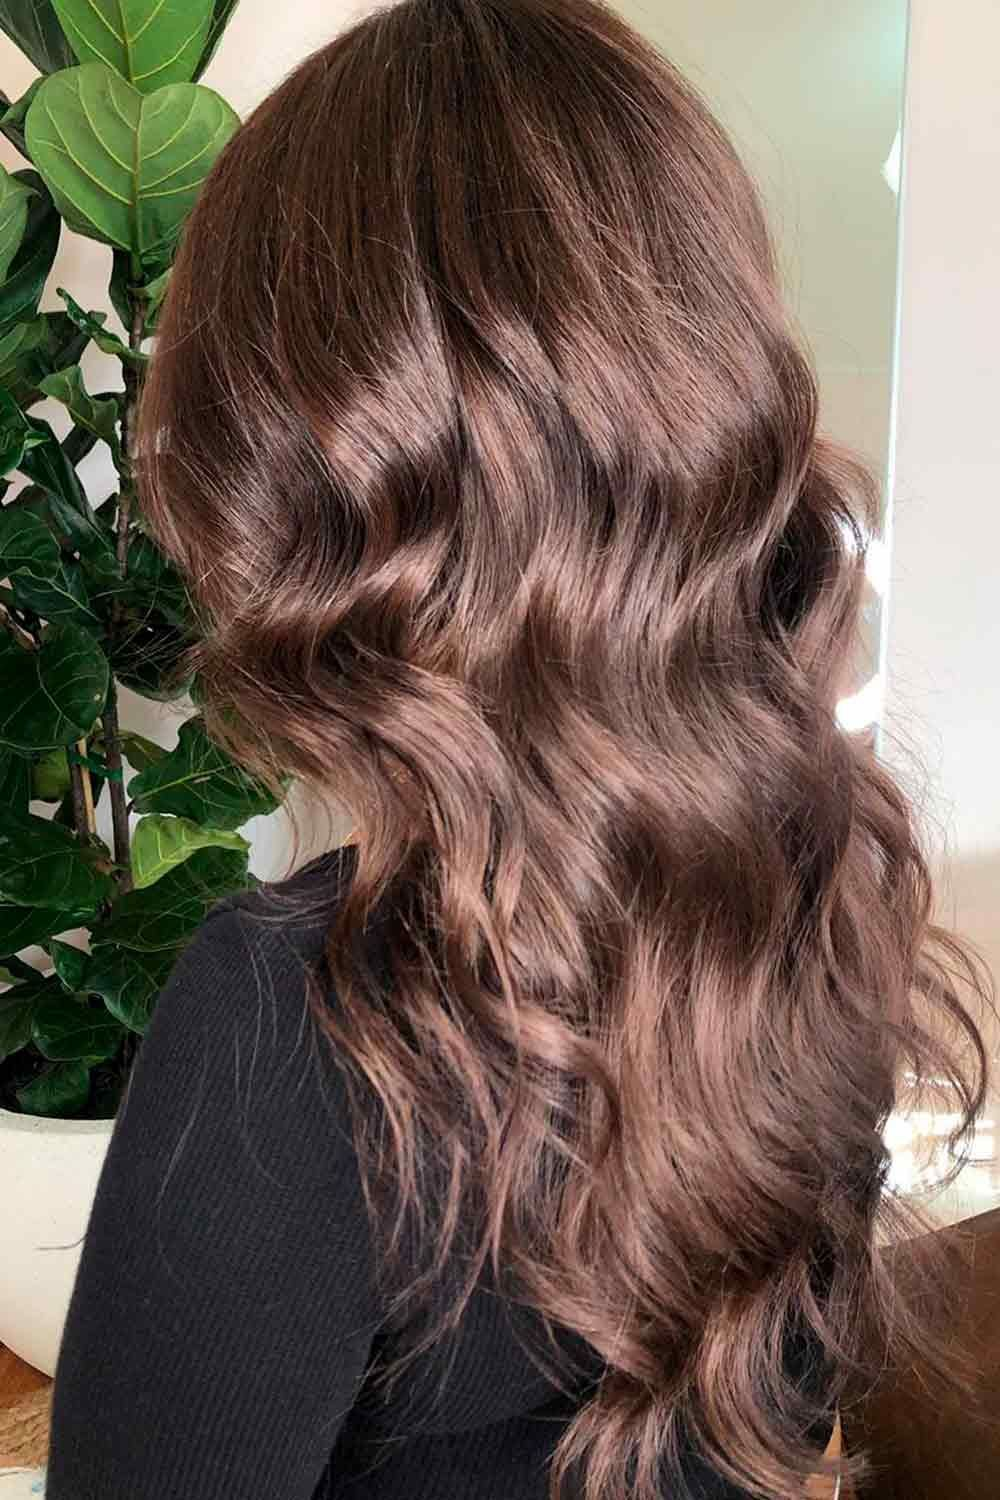 33 Rich And Soft Chestnut Hair Color Variations For Your Effortless Look Chestnut Hair Color Chestnut Hair Brown Hair With Blonde Highlights